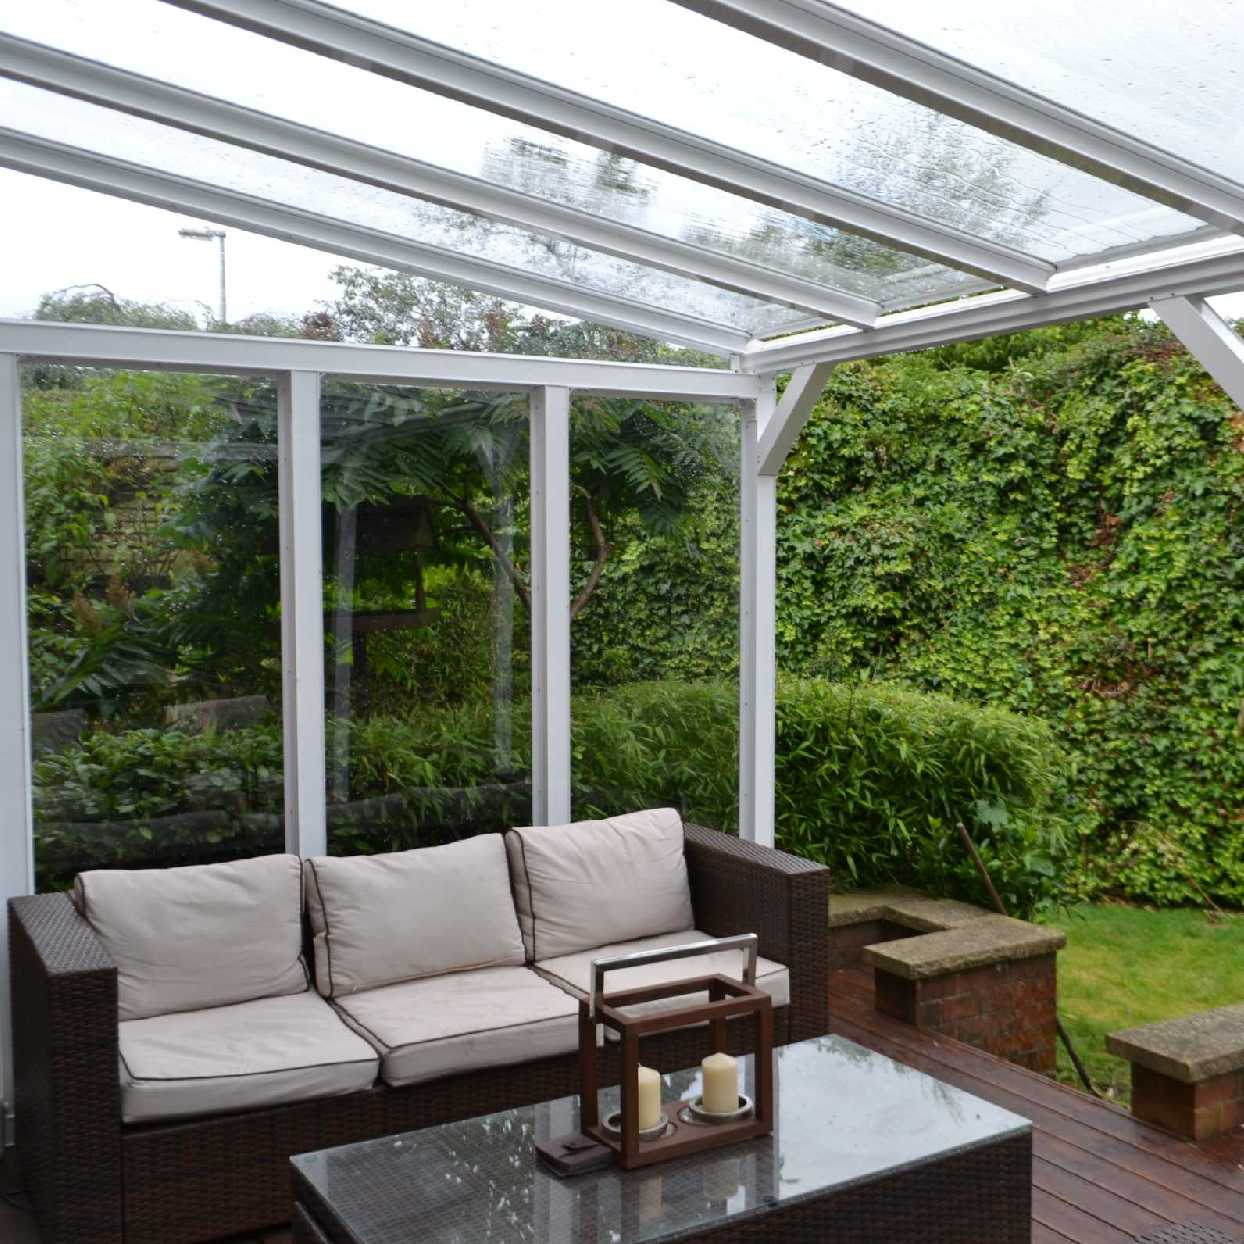 Great selection of Omega Smart White Lean-To Canopy with 16mm Polycarbonate Glazing - 9.2m (W) x 3.5m (P), (5) Supporting Posts